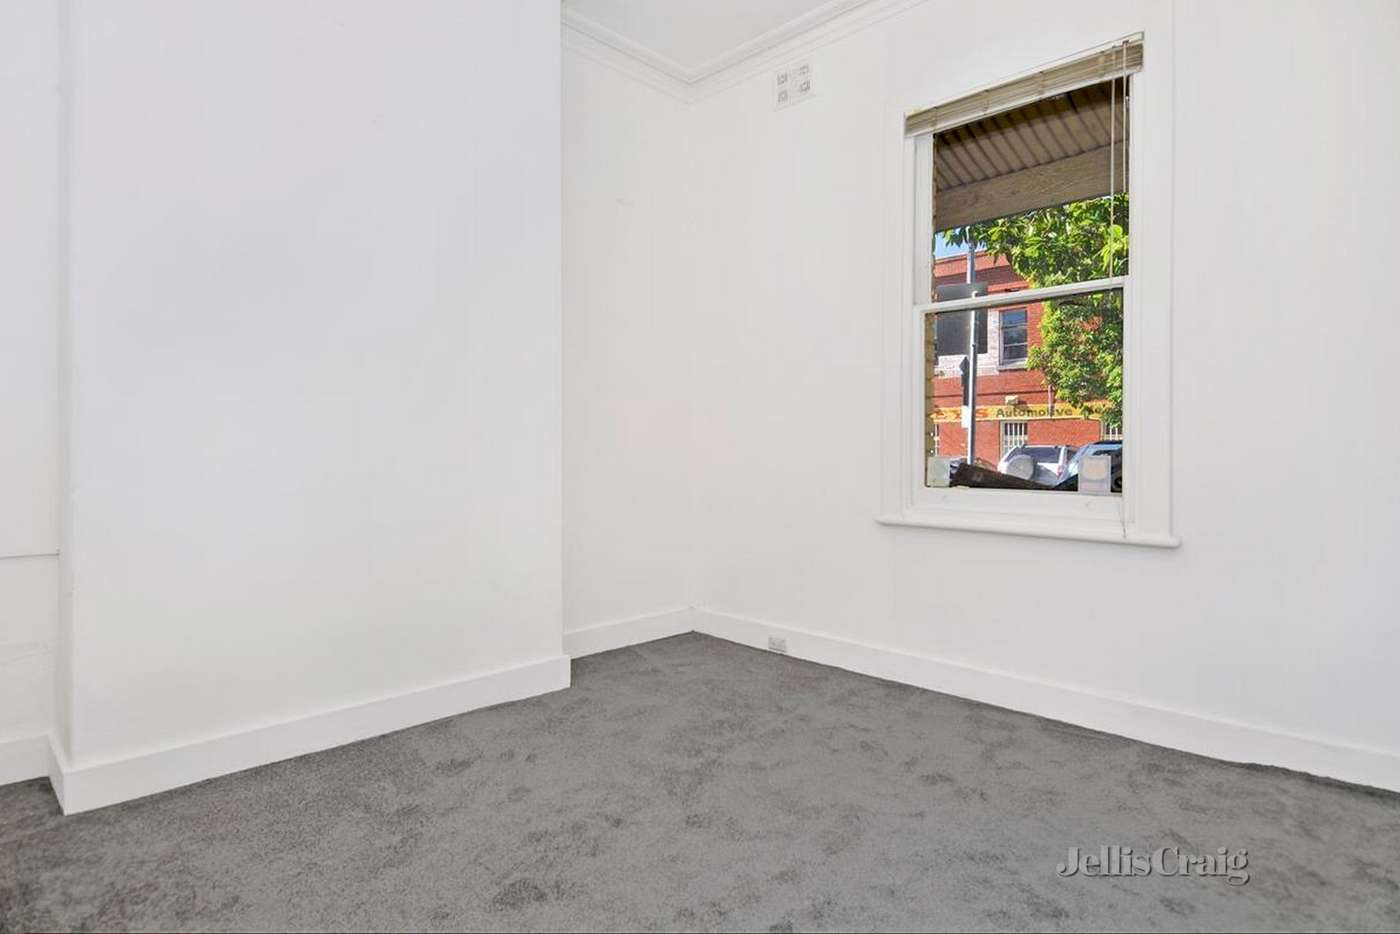 Main view of Homely house listing, 33 Cobden Street, North Melbourne VIC 3051